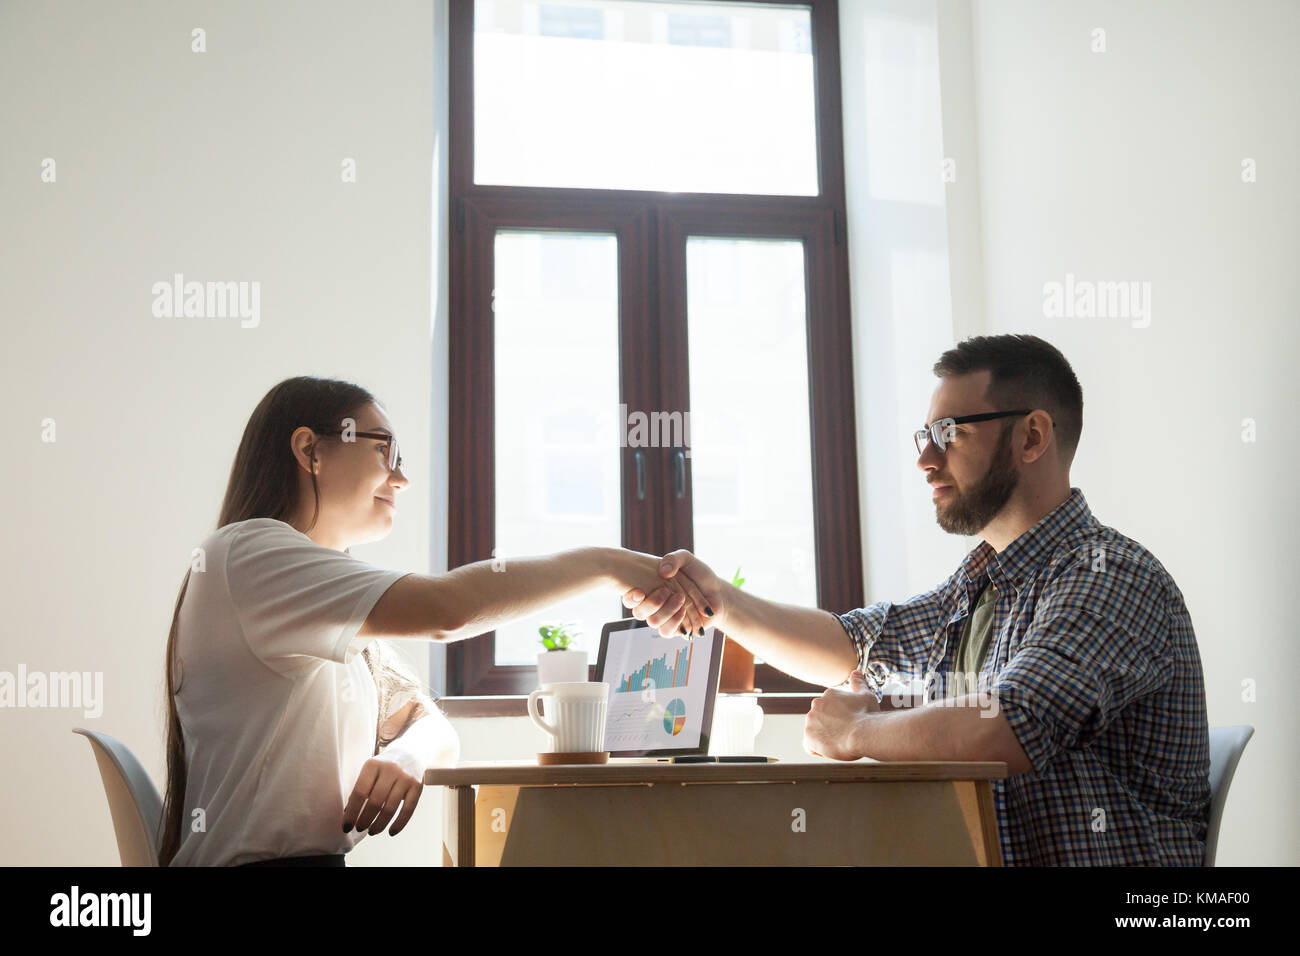 Friendly millennial businessman and businesswoman handshaking over office table after pleasant talk and business - Stock Image